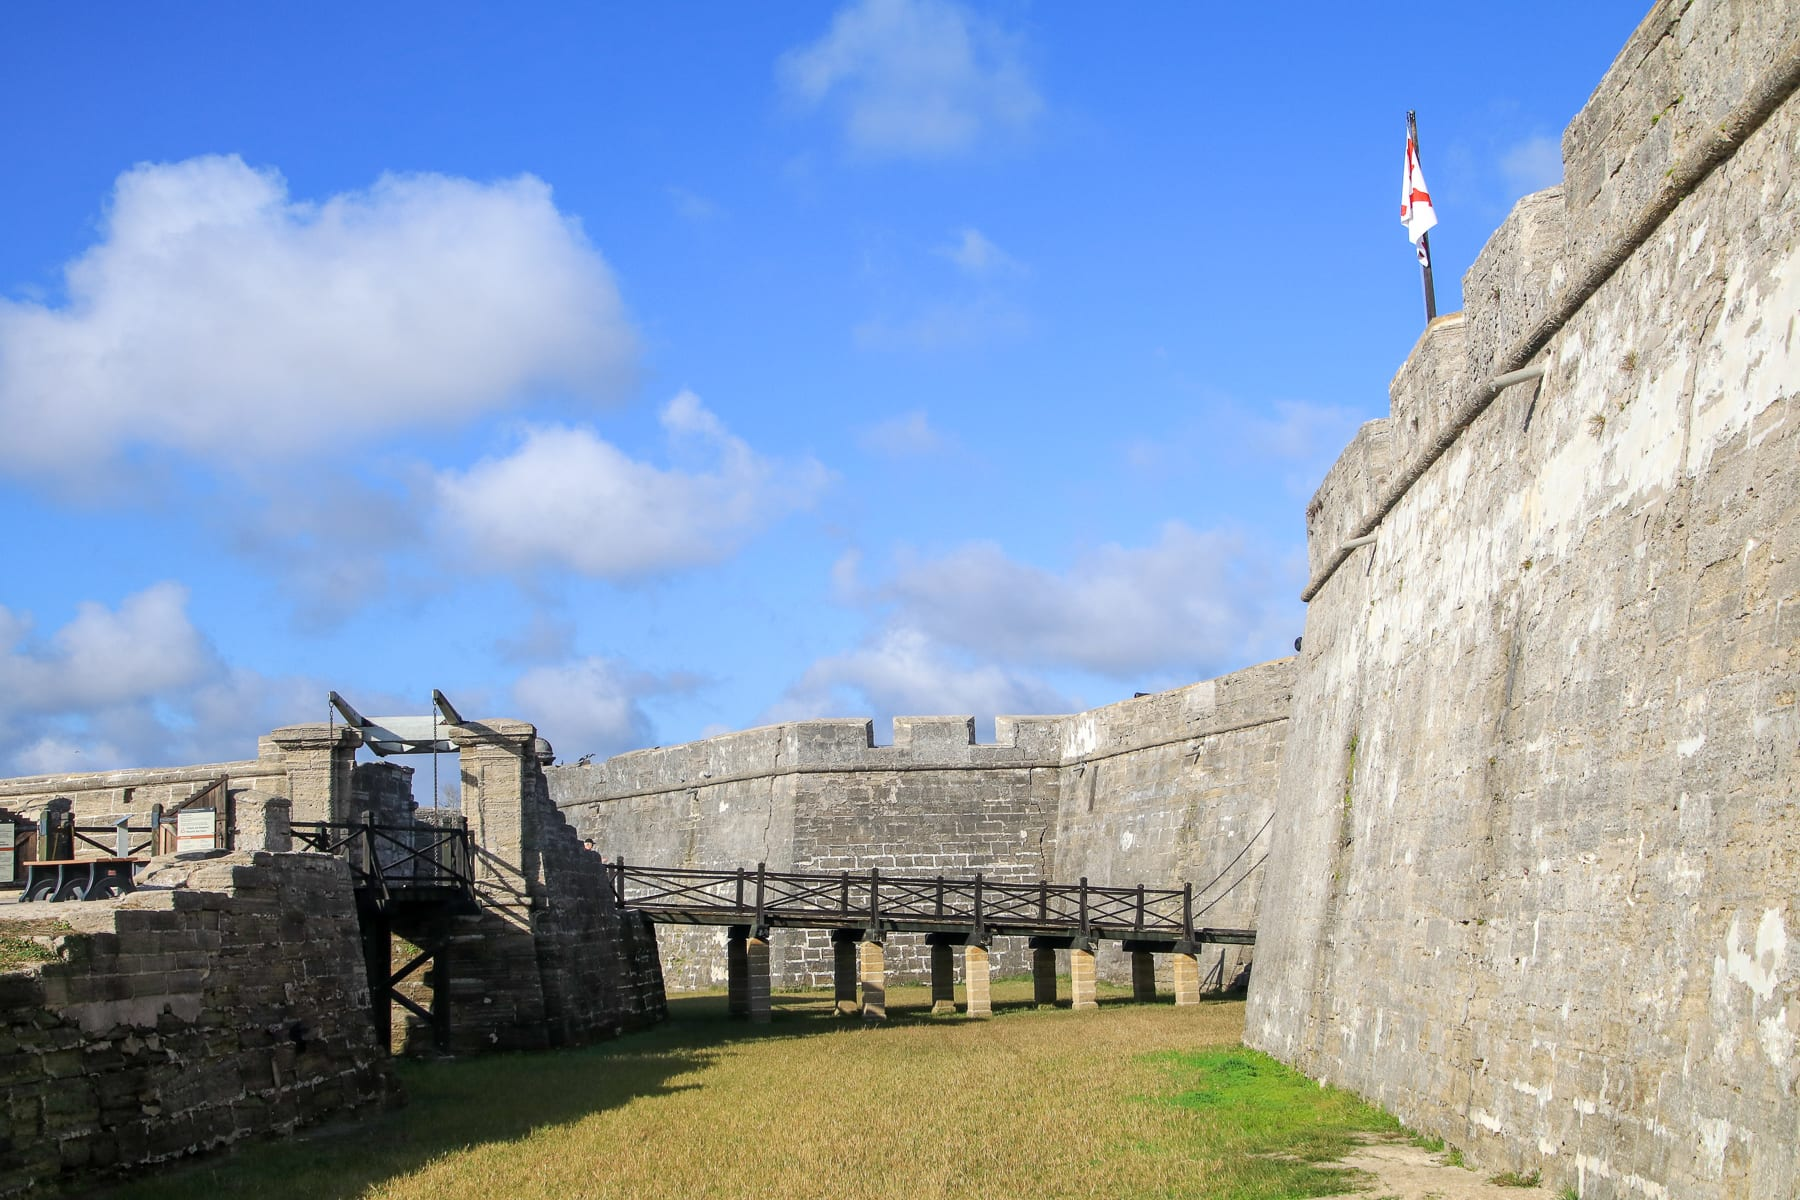 15-FL-journey-staugustine-fort04.jpg